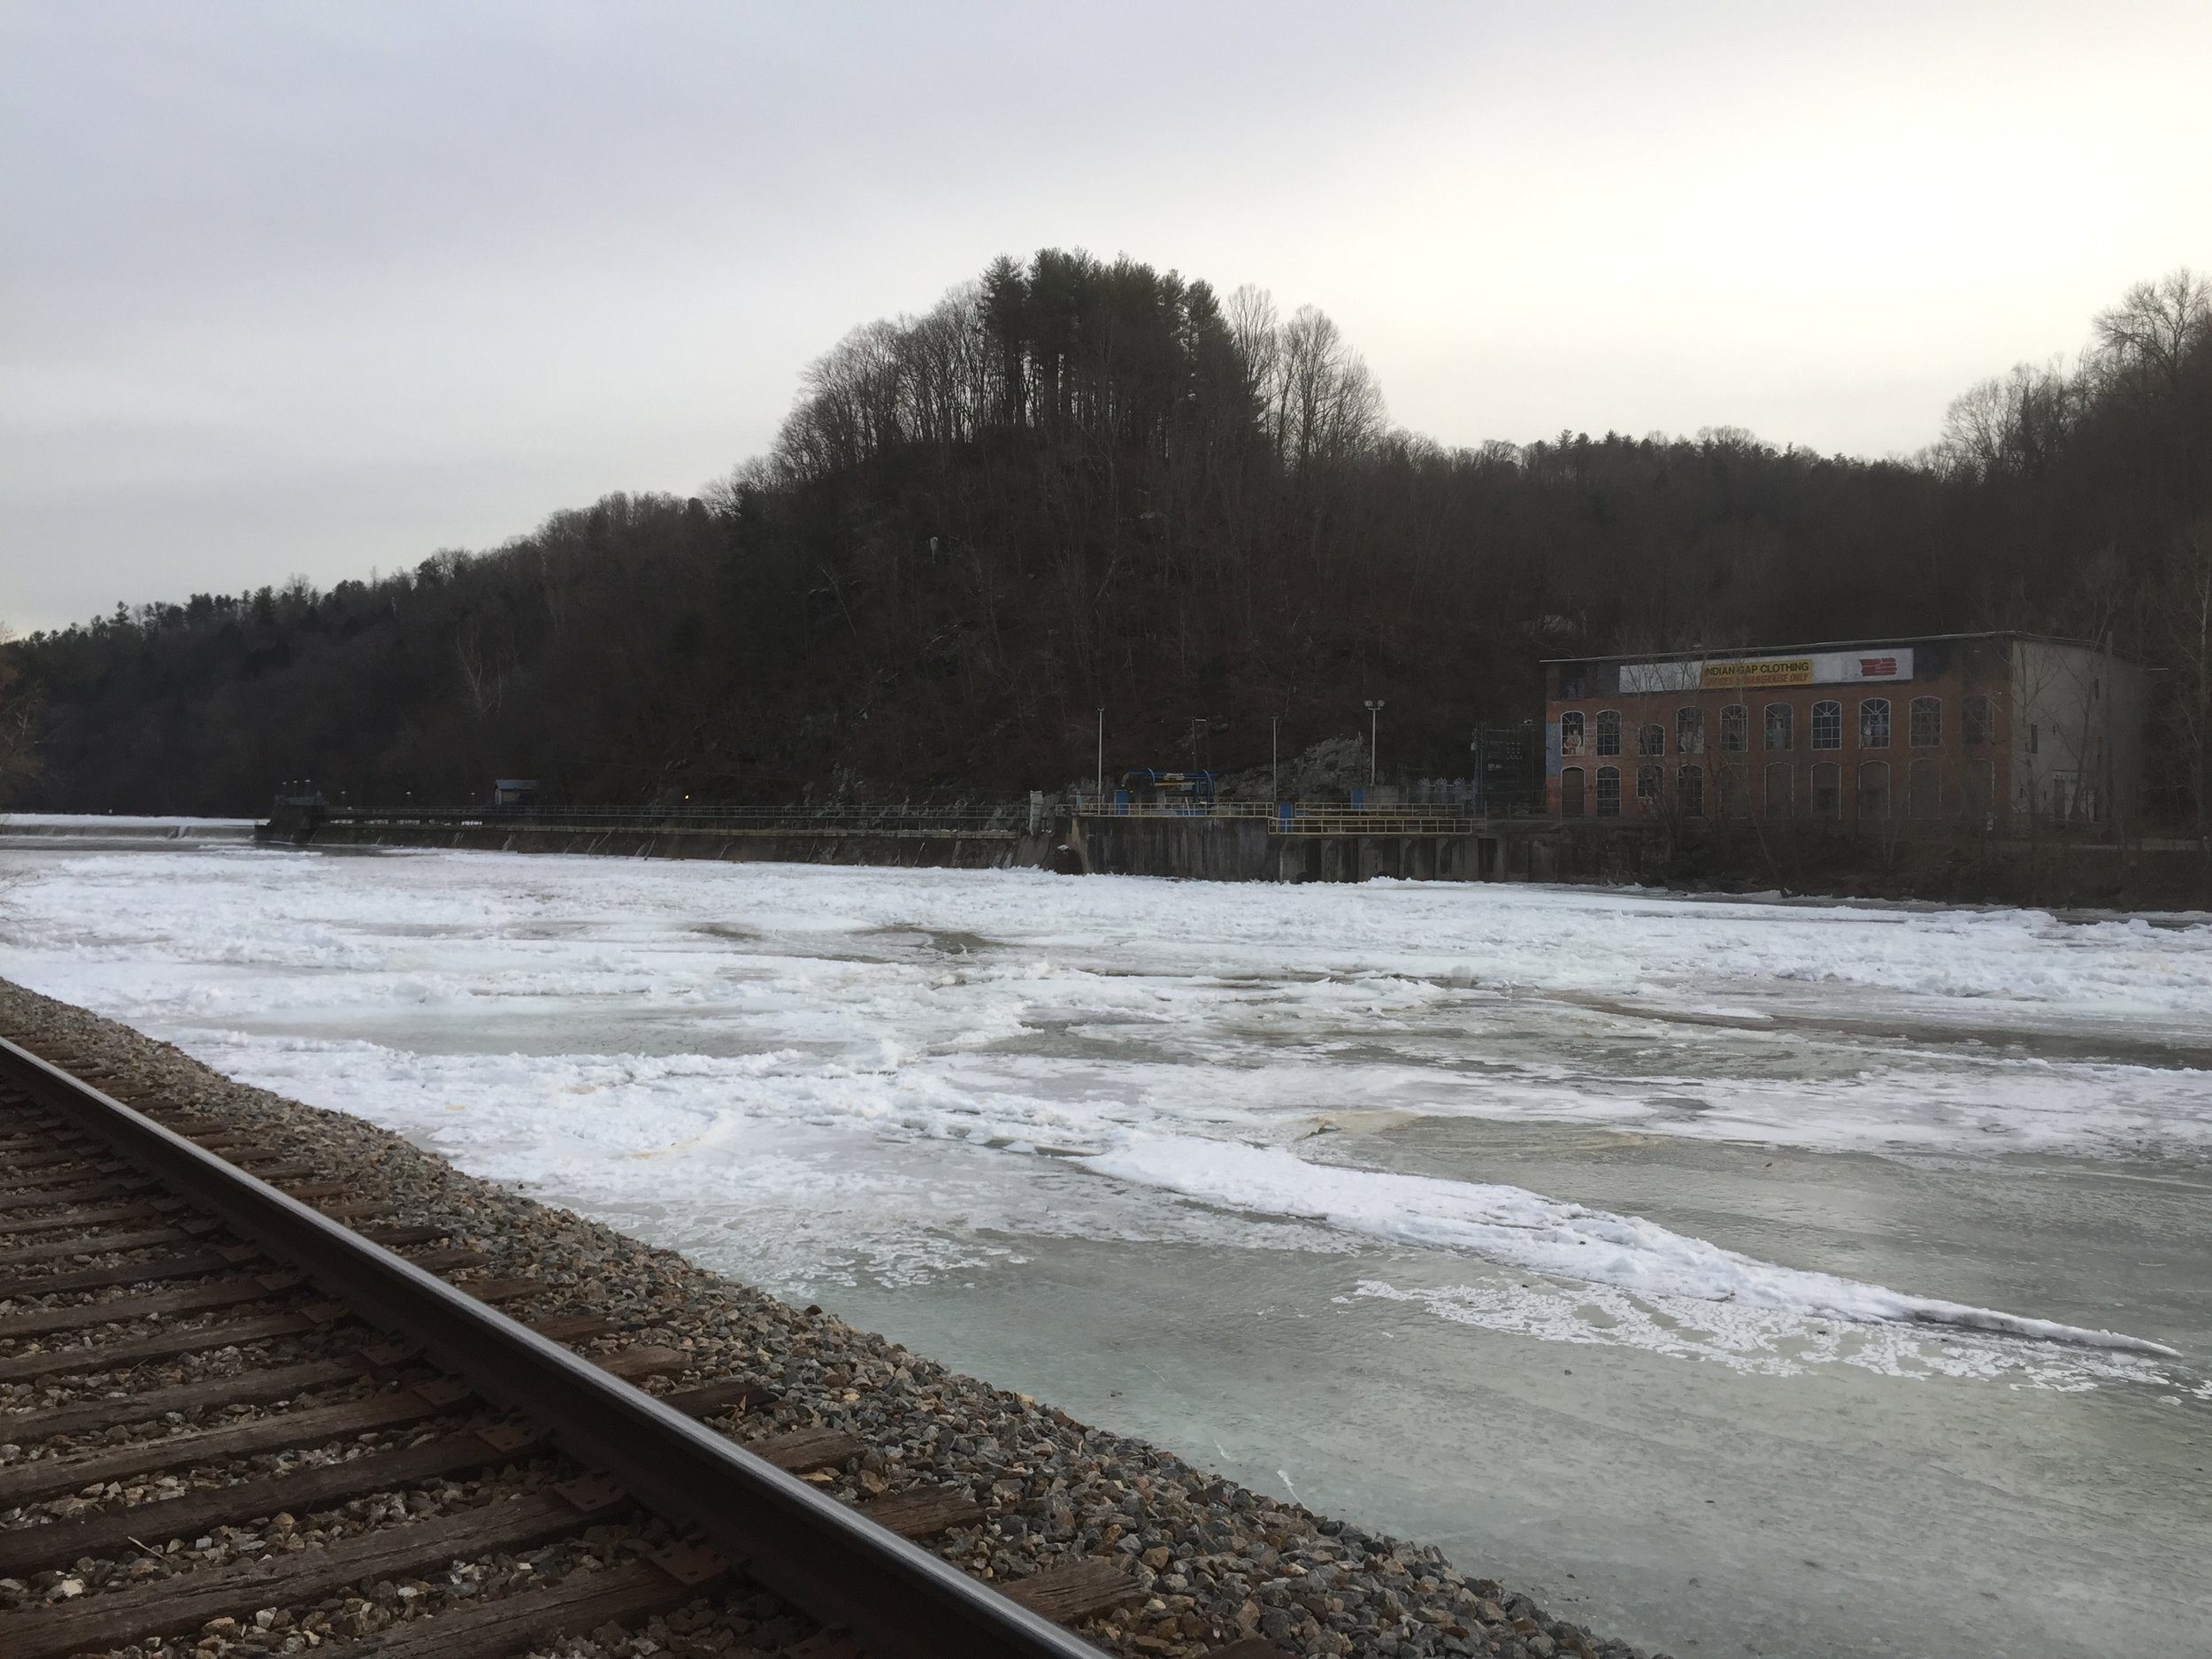 The French Broad River, which runs about two miles from the farm, froze during a long stretch of below-freezing days. The flowers, protected by low tunnels, soldiered on.